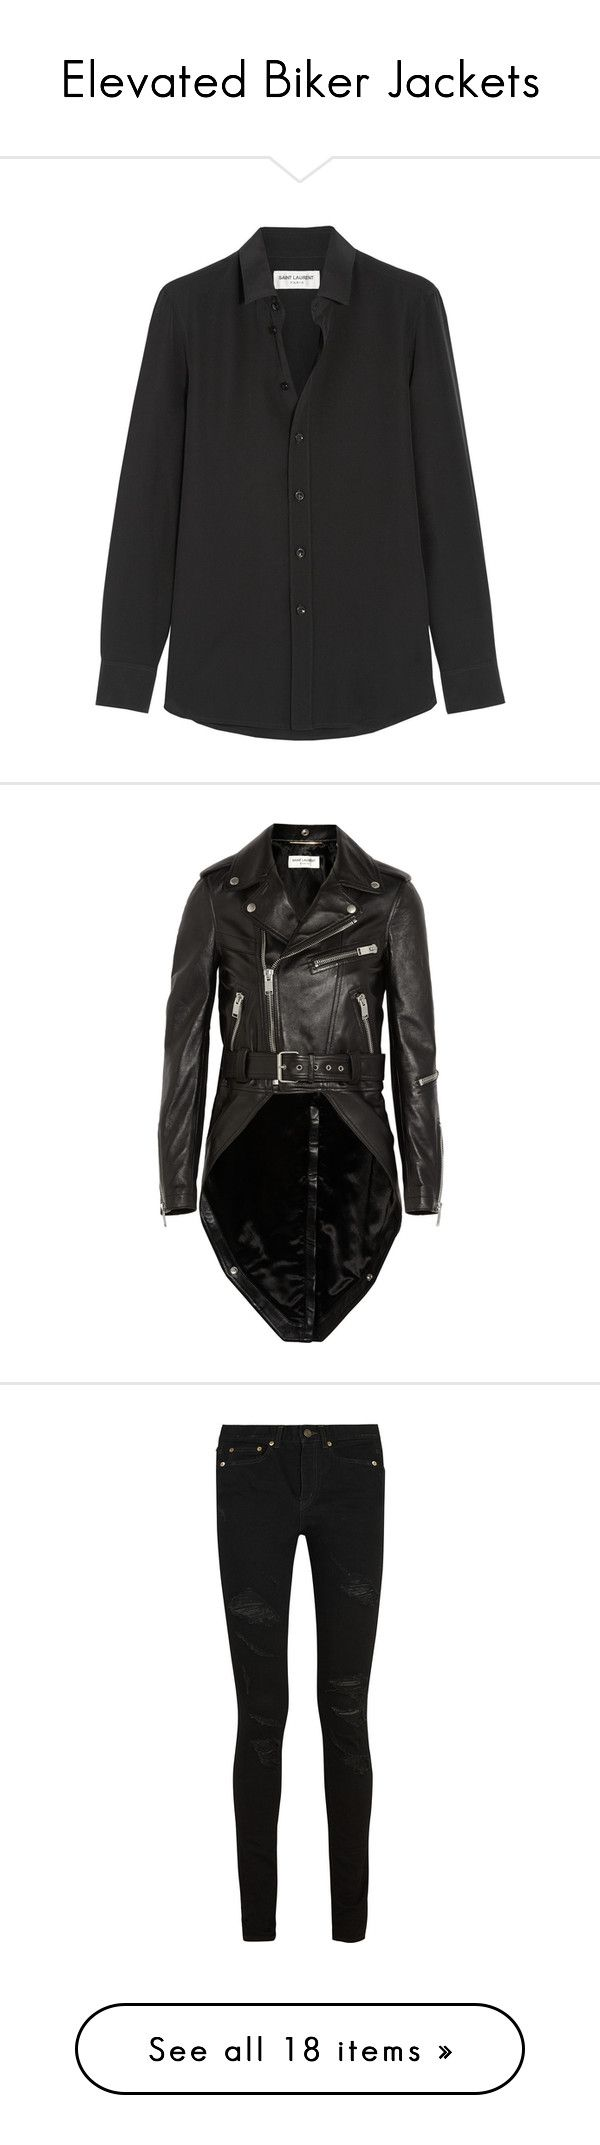 """Elevated Biker Jackets"" by netaporter ❤ liked on Polyvore featuring tops, shirts, blouses, pitkähihat, saint laurent, black, yves saint laurent shirt, shiny shirt, black shirt and silk shirt"